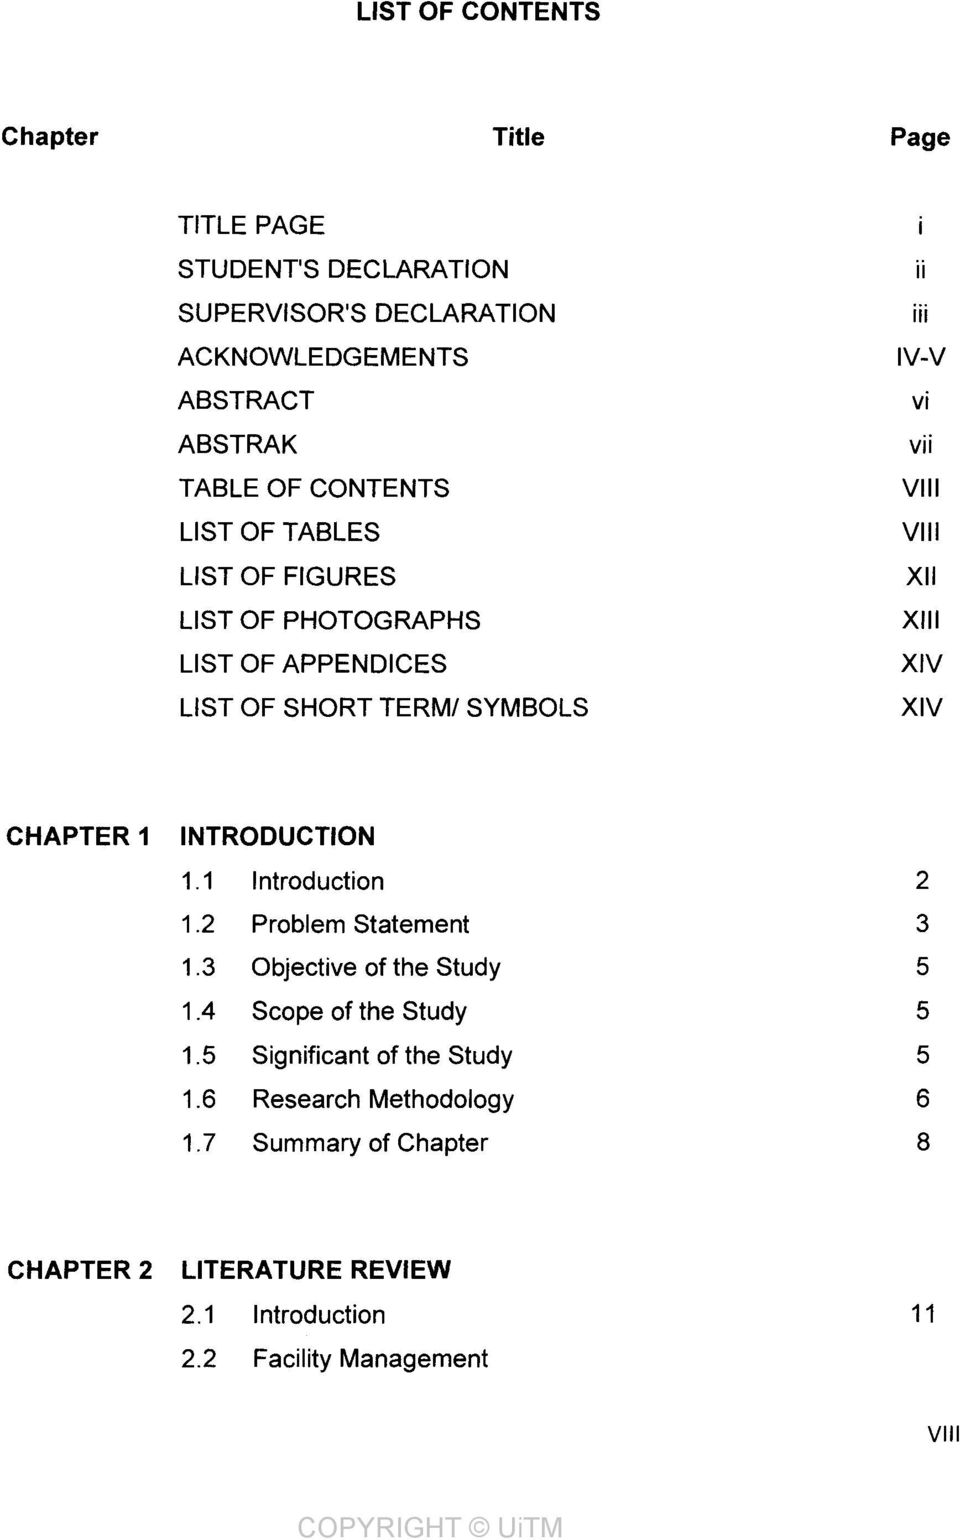 SYMBOLS ii iii IV-V vi vii VIII VIII XII XIII XIV XIV CHAPTER 1 INTRODUCTION 1.1 Introduction 2 1.2 Problem Statement 3 1.